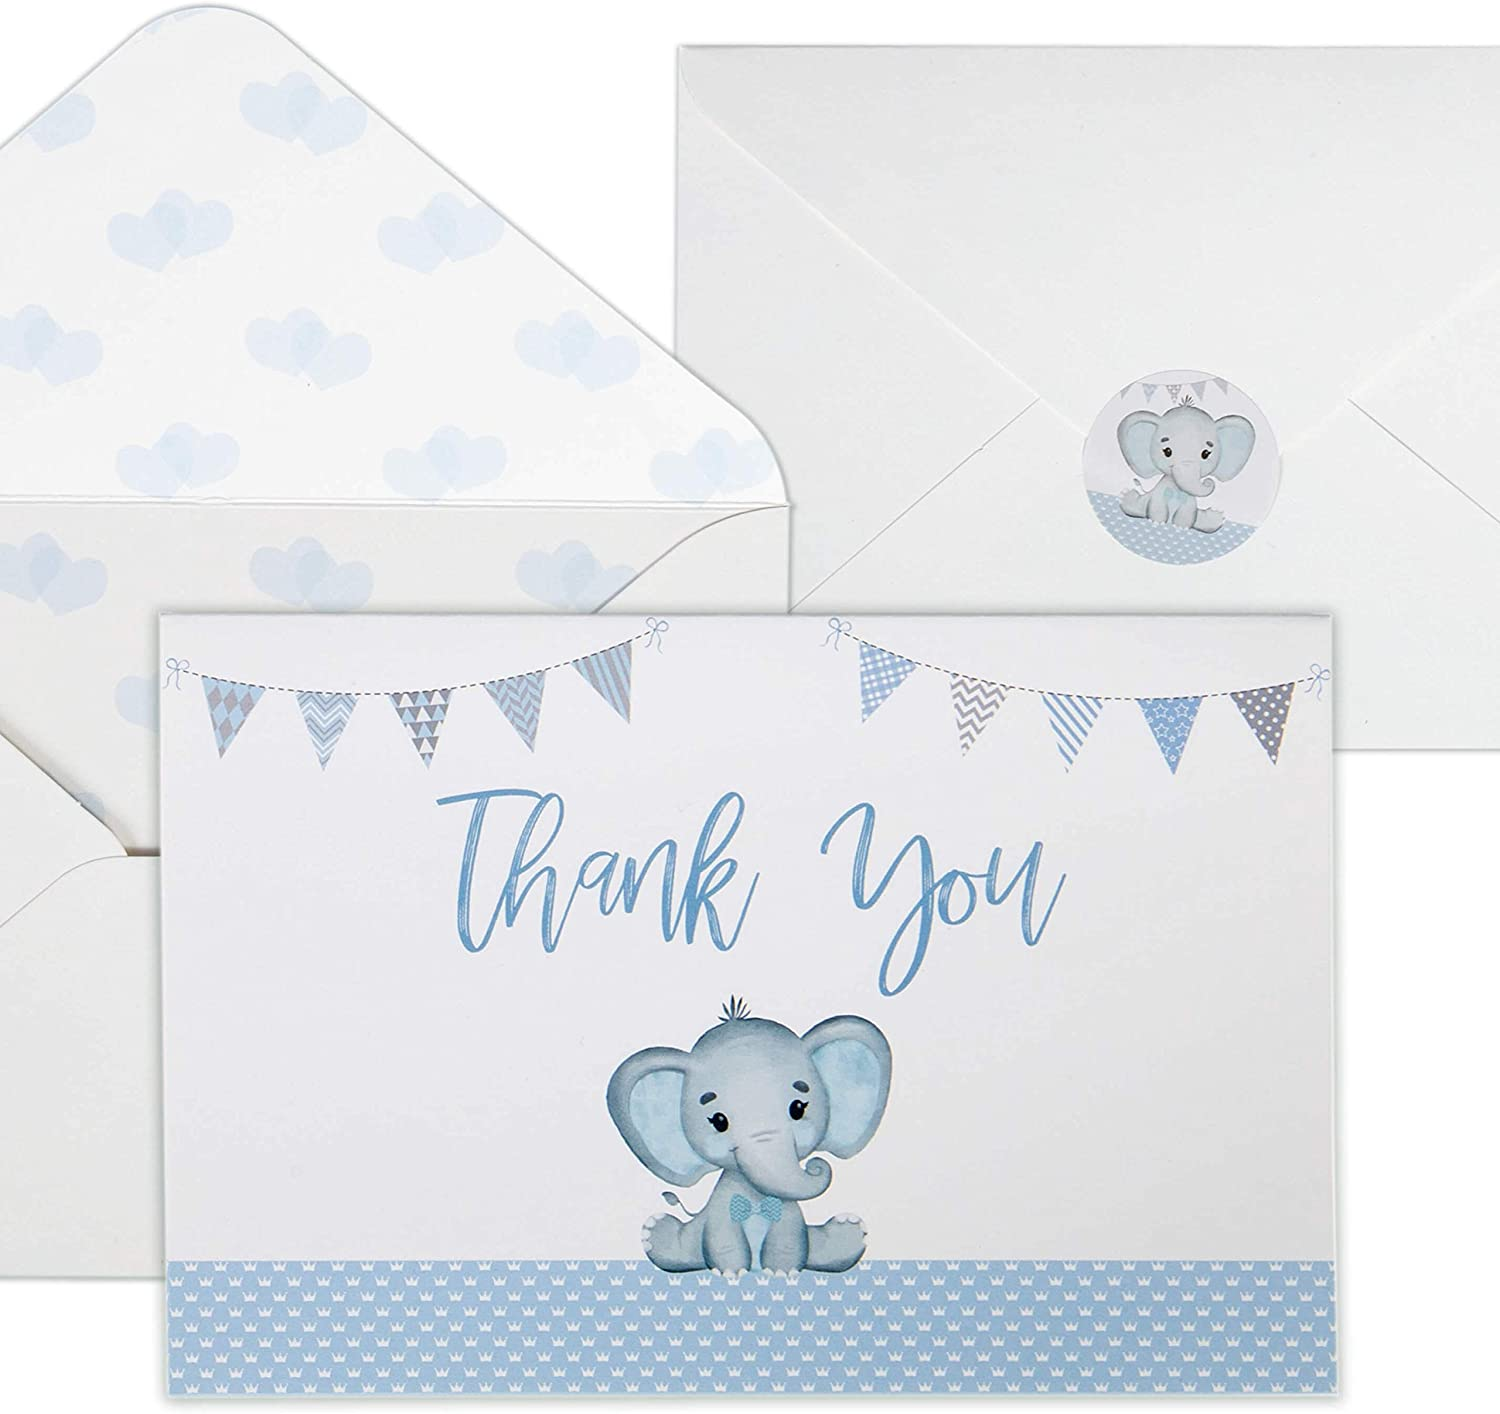 Baby Shower Thank You Cards for Ranking integrated 1st place Pack Blue El Brand Cheap Sale Venue Boys. 50 Watercolor